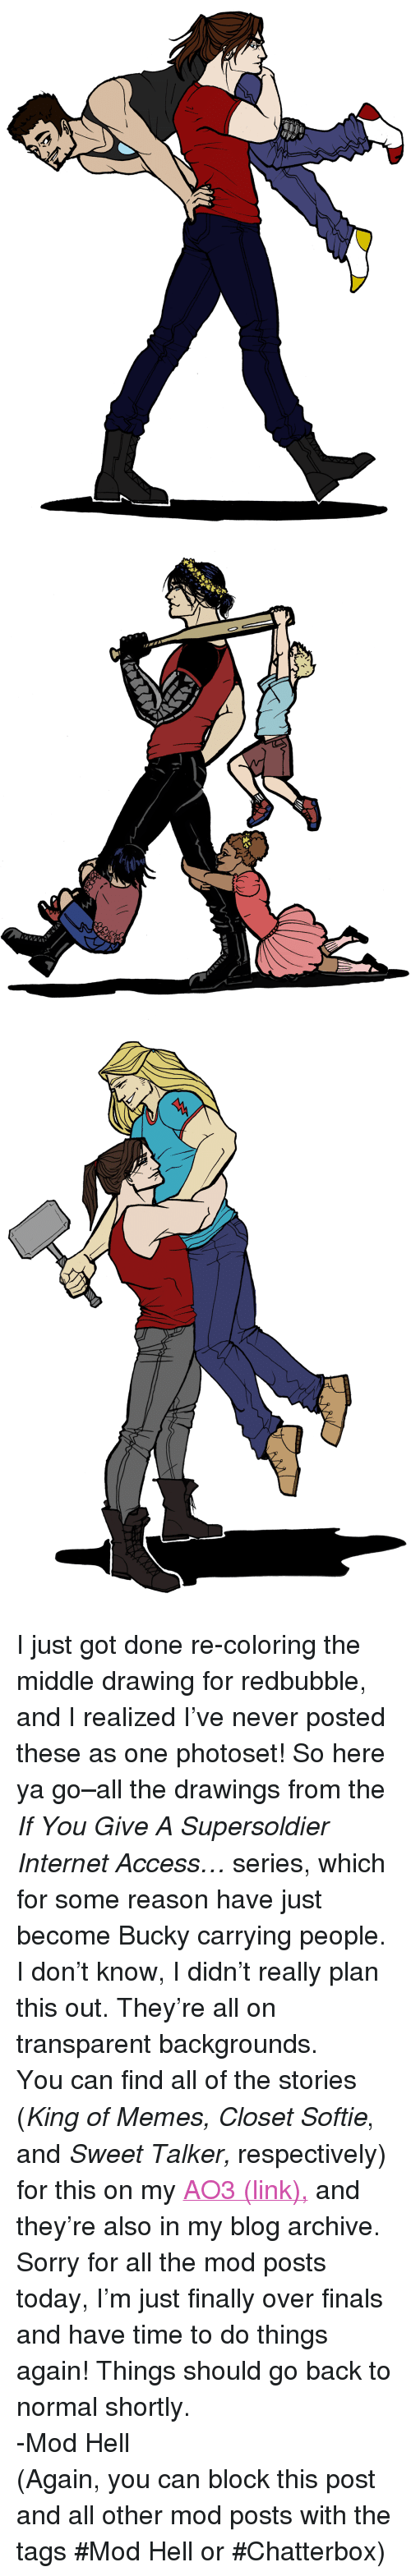 """Finals, Internet, and Memes: <p>I just got done re-coloring the middle drawing for redbubble, and I realized I've never posted these as one photoset! So here ya go&ndash;all the drawings from the <i>If You Give A Supersoldier Internet Access&hellip;</i> series, which for some reason have just become Bucky carrying people. I don't know, I didn't really plan this out. They're all on transparent backgrounds.</p><p>You can find all of the stories (<i>King of Memes, Closet Softie</i>, and <i>Sweet Talker, </i>respectively) for this on my <a href=""""http://Archiveofourown.org/users/BuckyKingOfMemes"""">AO3 (link),</a> and they're also in my blog archive.</p><p>Sorry for all the mod posts today, I'm just finally over finals and have time to do things again! Things should go back to normal shortly.</p><p>-Mod Hell</p><p>(Again, you can block this post and all other mod posts with the tags #Mod Hell or #Chatterbox)</p>"""